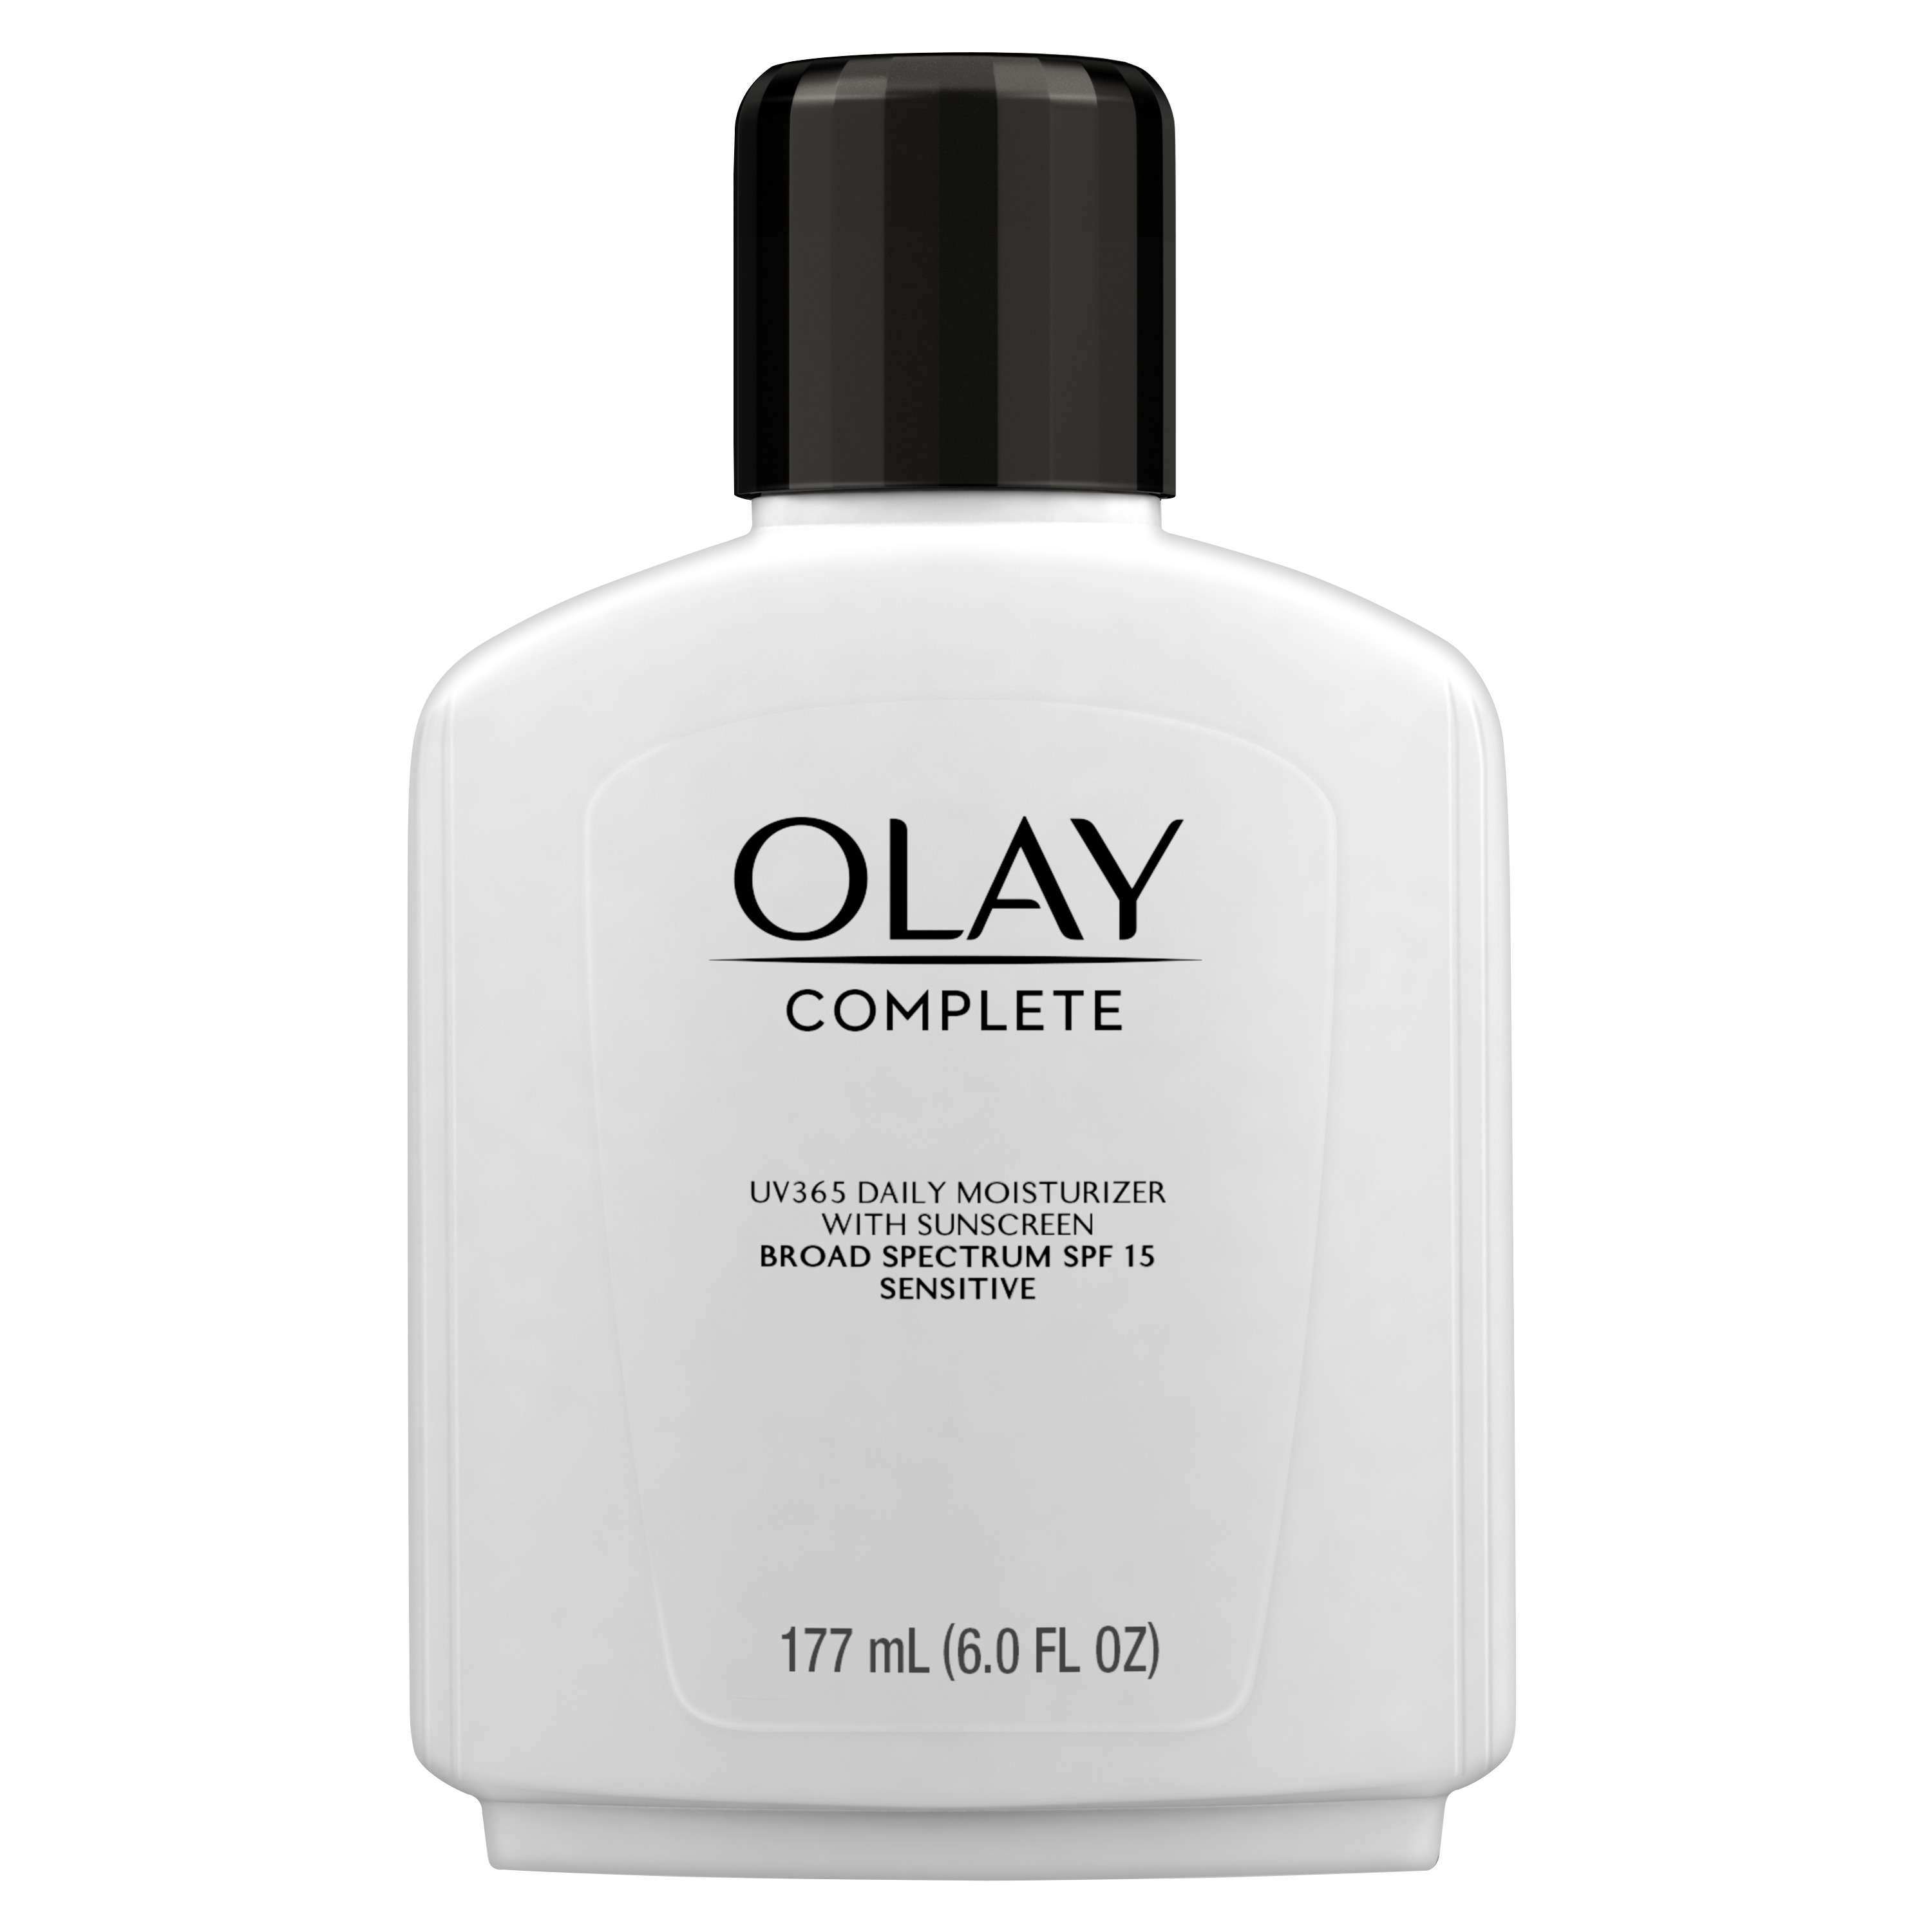 Olay Complete Lotion Face Moisturizer with SPF 15 Sensitive, 6.0 oz